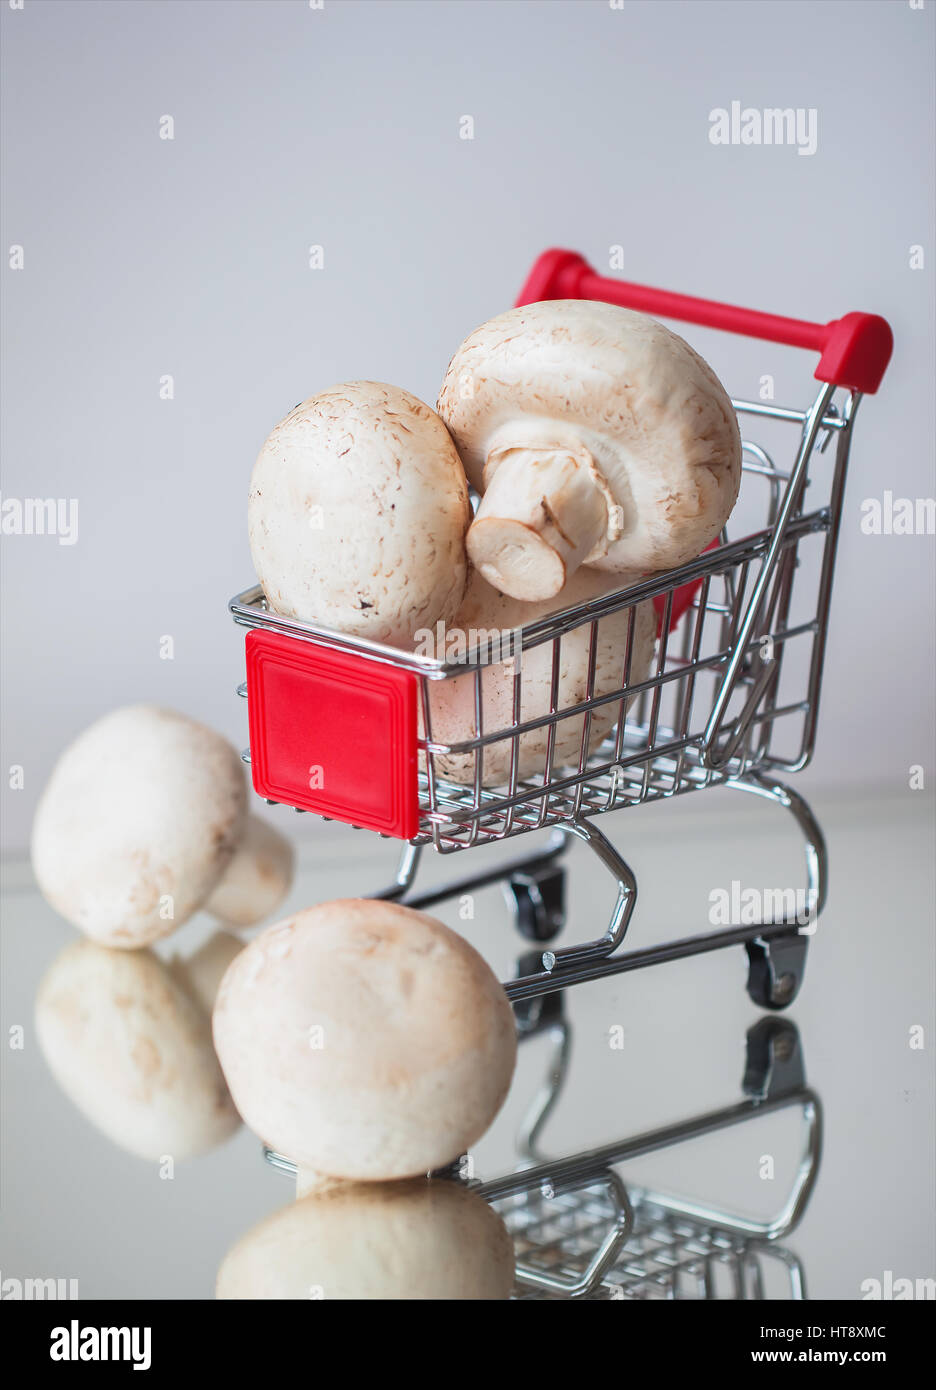 Mini cart shopping witch organic mushrooms on light background. Diet, health or vegetarian food concept. - Stock Image